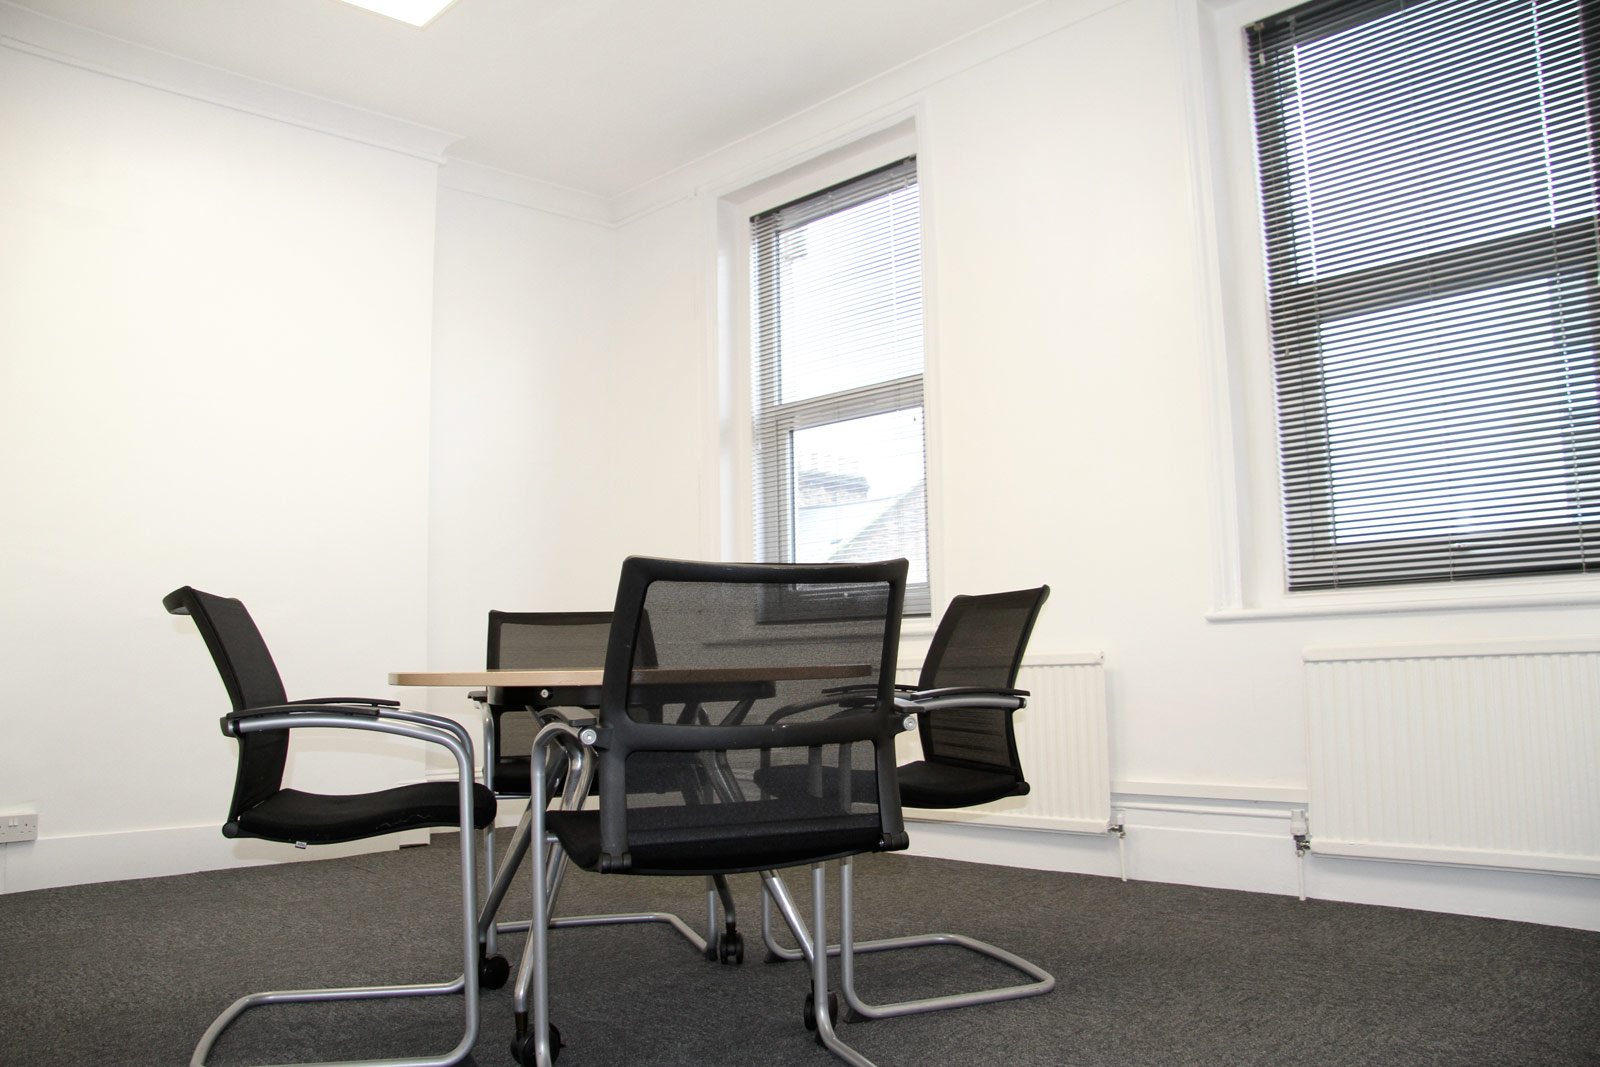 We are a UK-London based Serviced office & Virtual Office provider, serving businesses successfully since 2012. Our business is helping your business to flourish. At SBN, we like to think of ourselves as a one-stop solution for business administration, providing our customers with the tools they need to get – and keep – one step ahead of the competition.